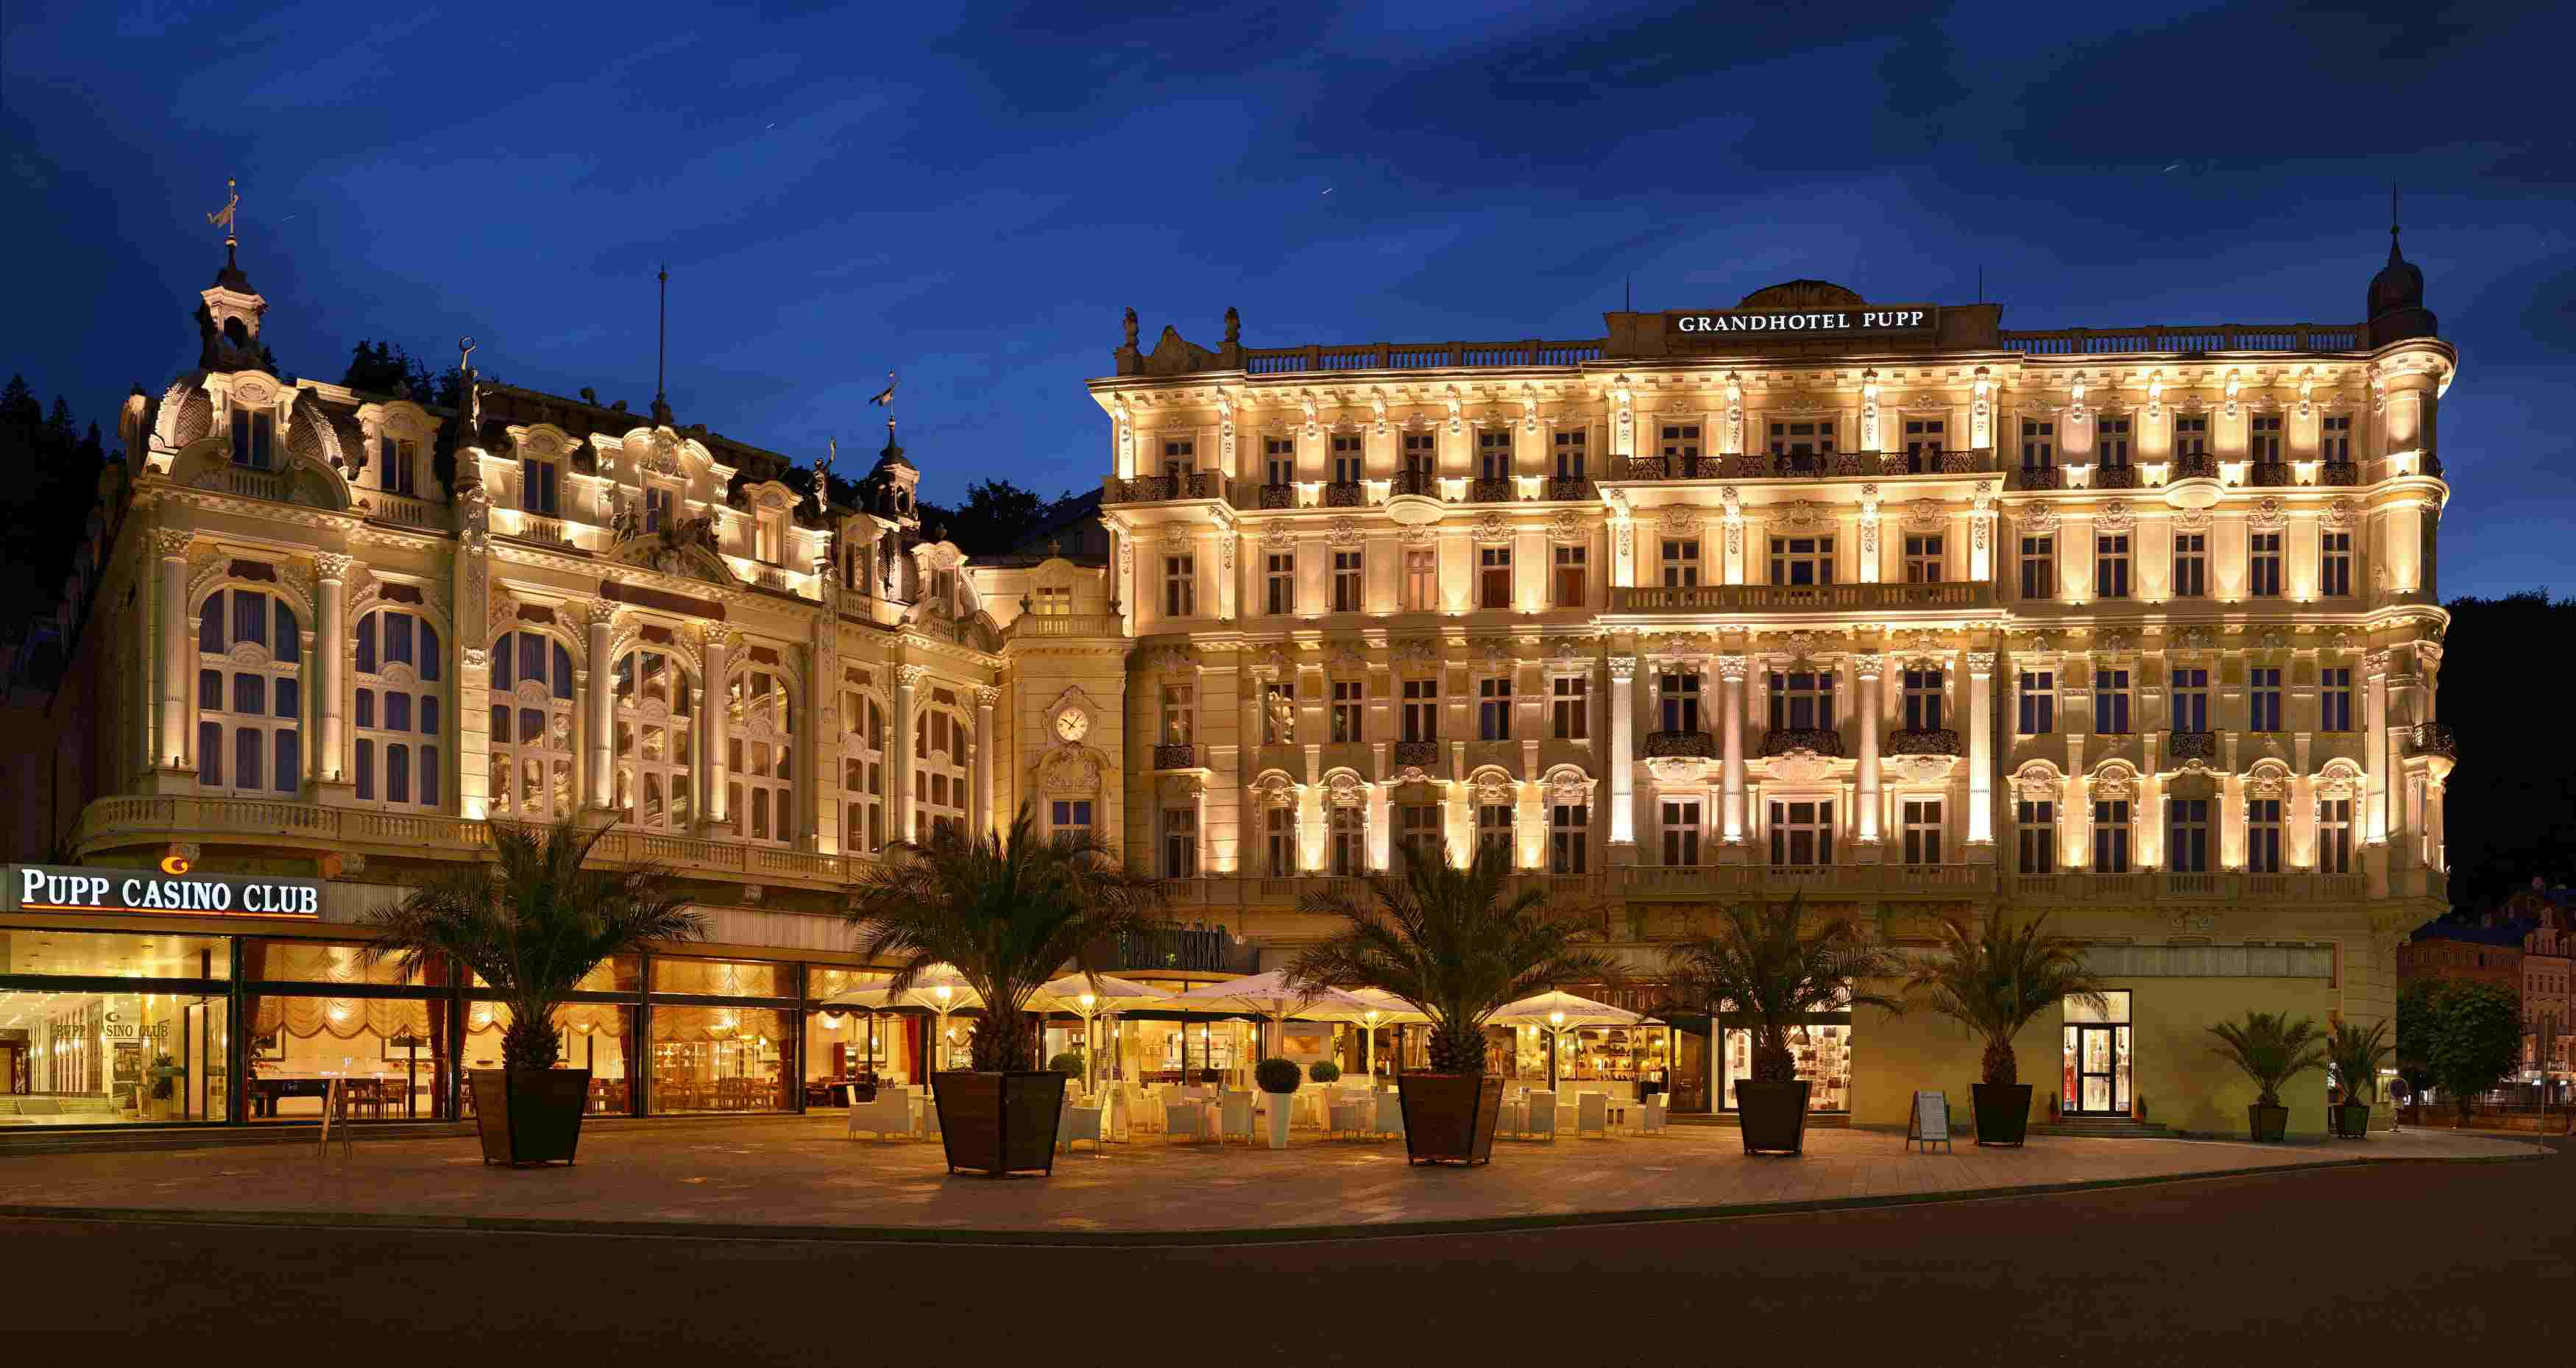 Le grandhotel pupp prague secret parisien for Hotel le secret paris